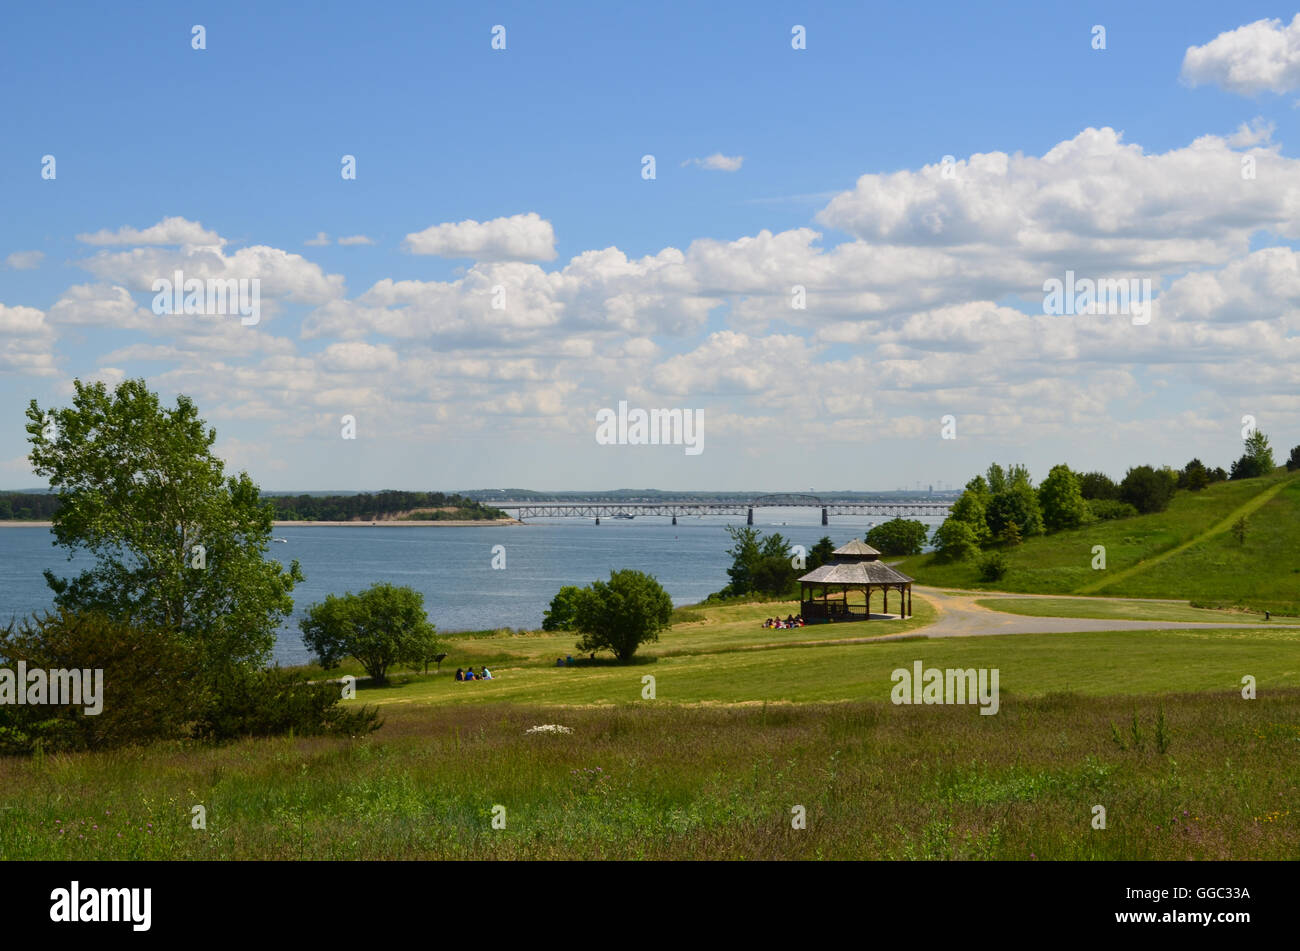 Amazing views of hiking paths and sunny Spectacle Island in Boston Harbor. - Stock Image